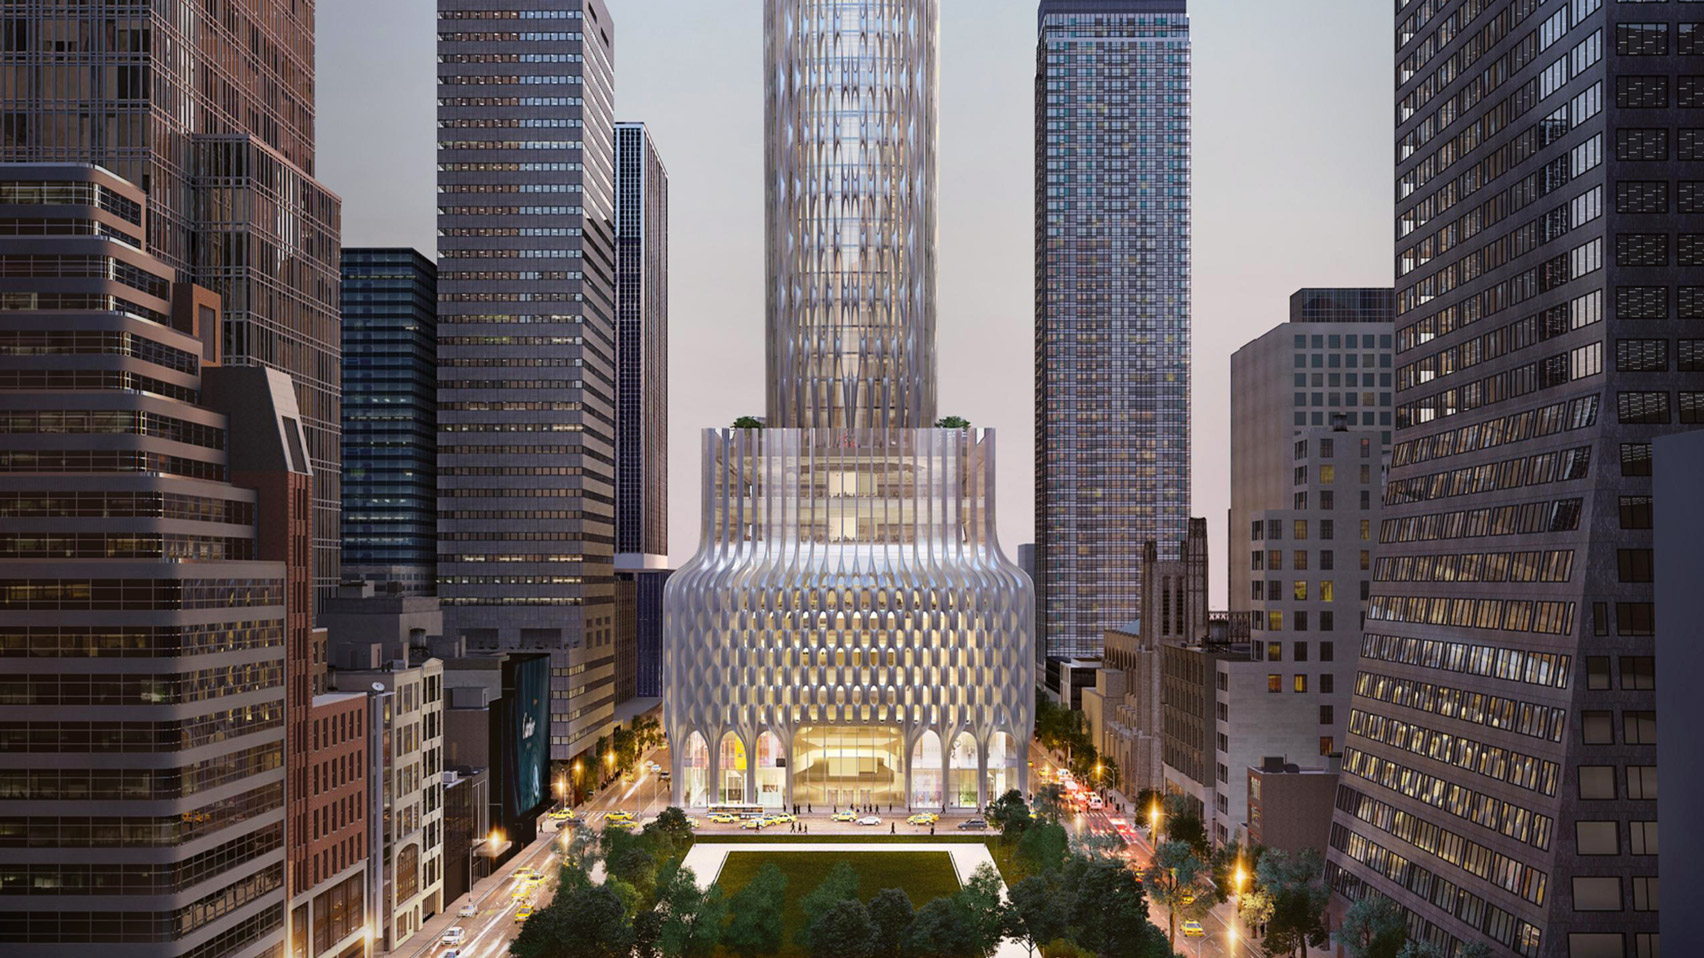 Zaha hadid architects unveil nyc skyscraper kontaktmag for Architecture companies in nyc